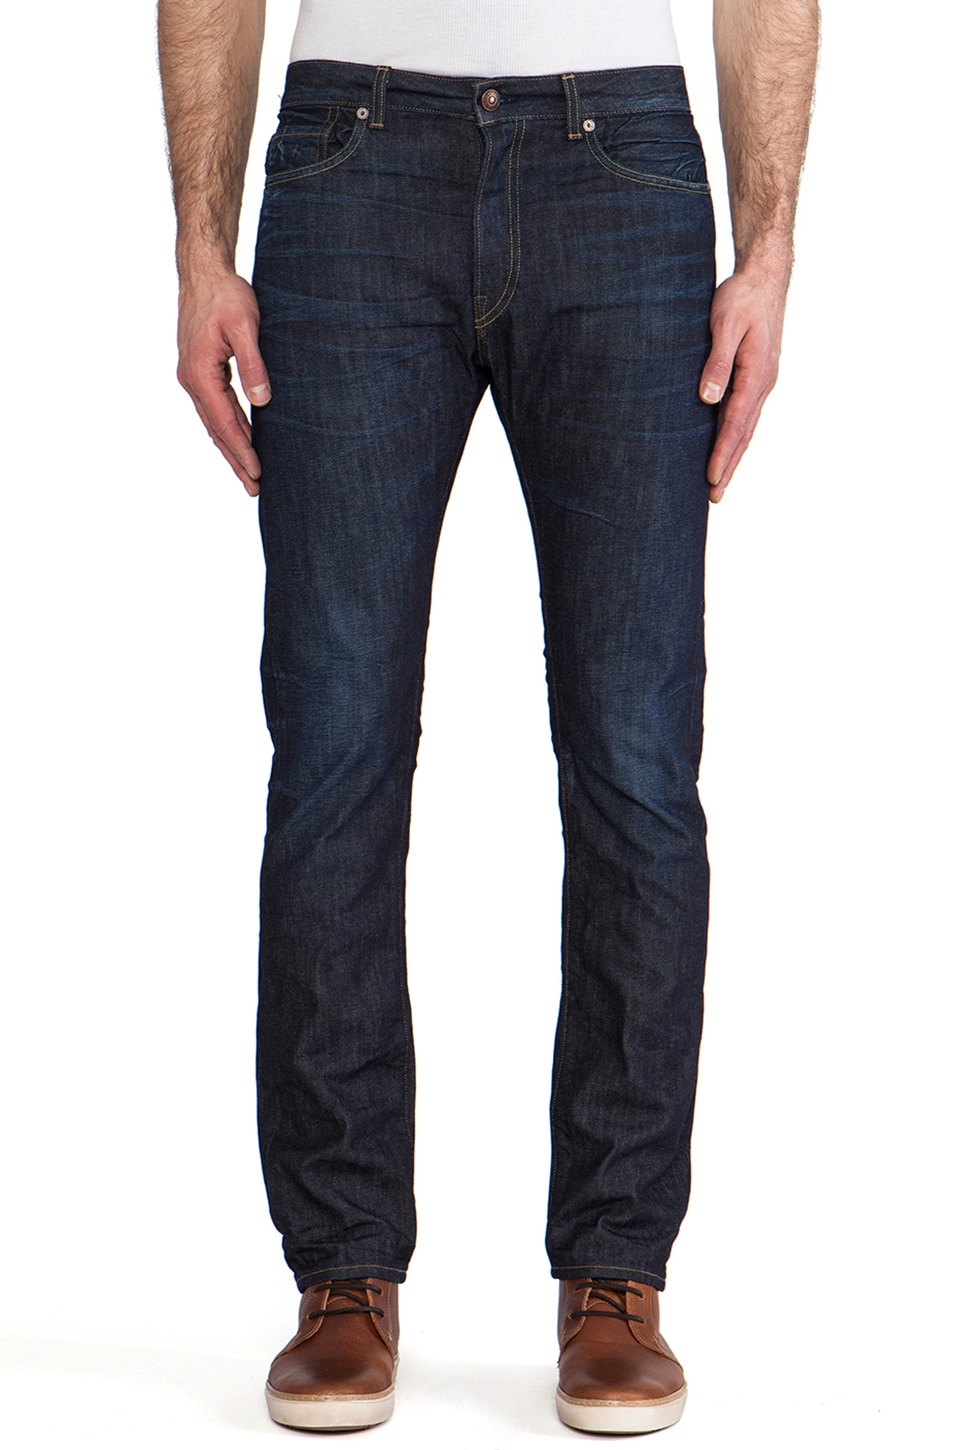 LEVI'S: Made & Crafted Made in the USA Tack Slim in Less